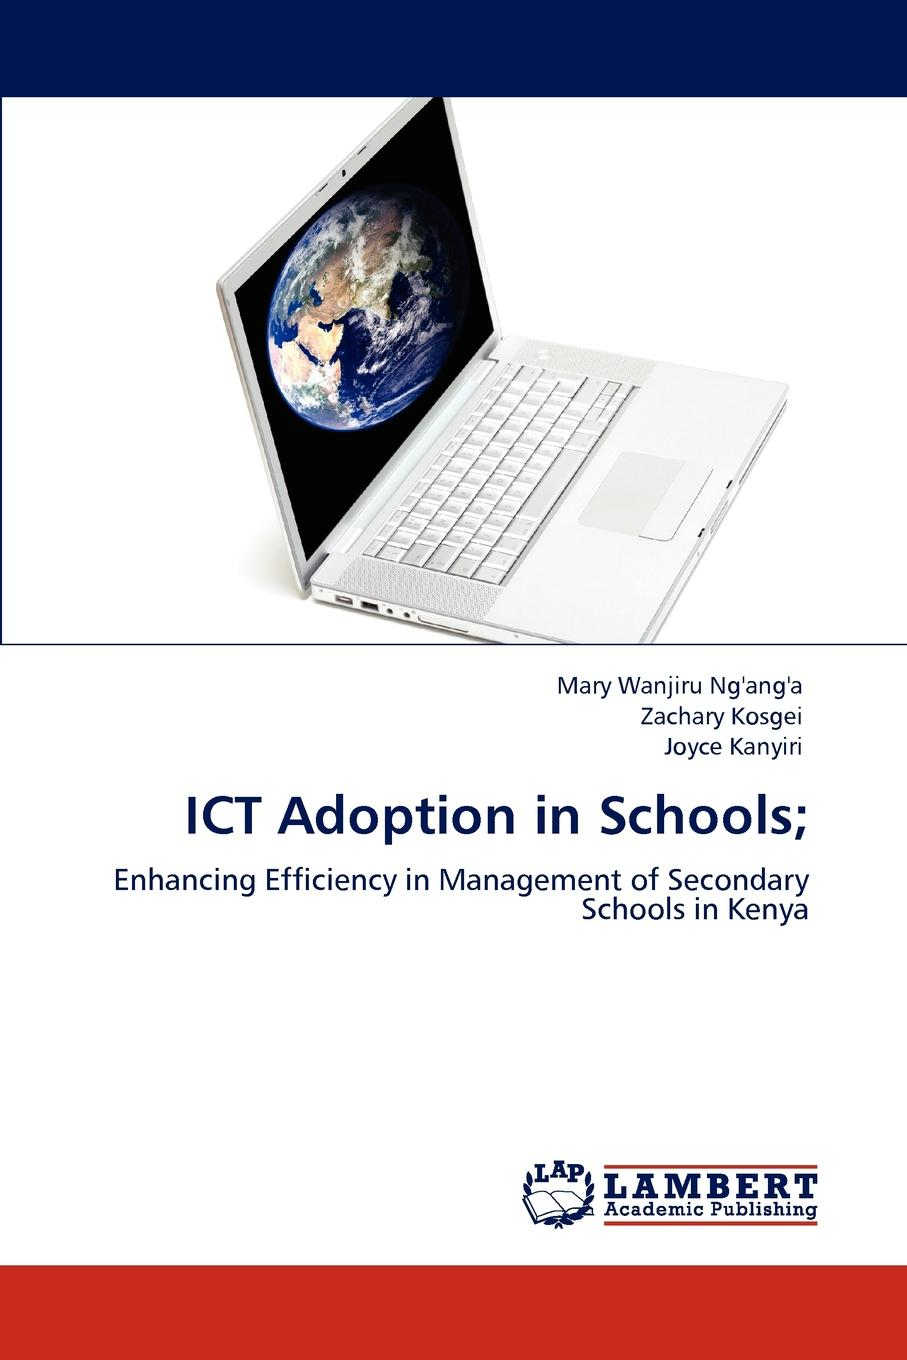 Mary Wanjiru Ng'ang'a, Zachary Kosgei, Joyce Kanyiri Ict Adoption in Schools;